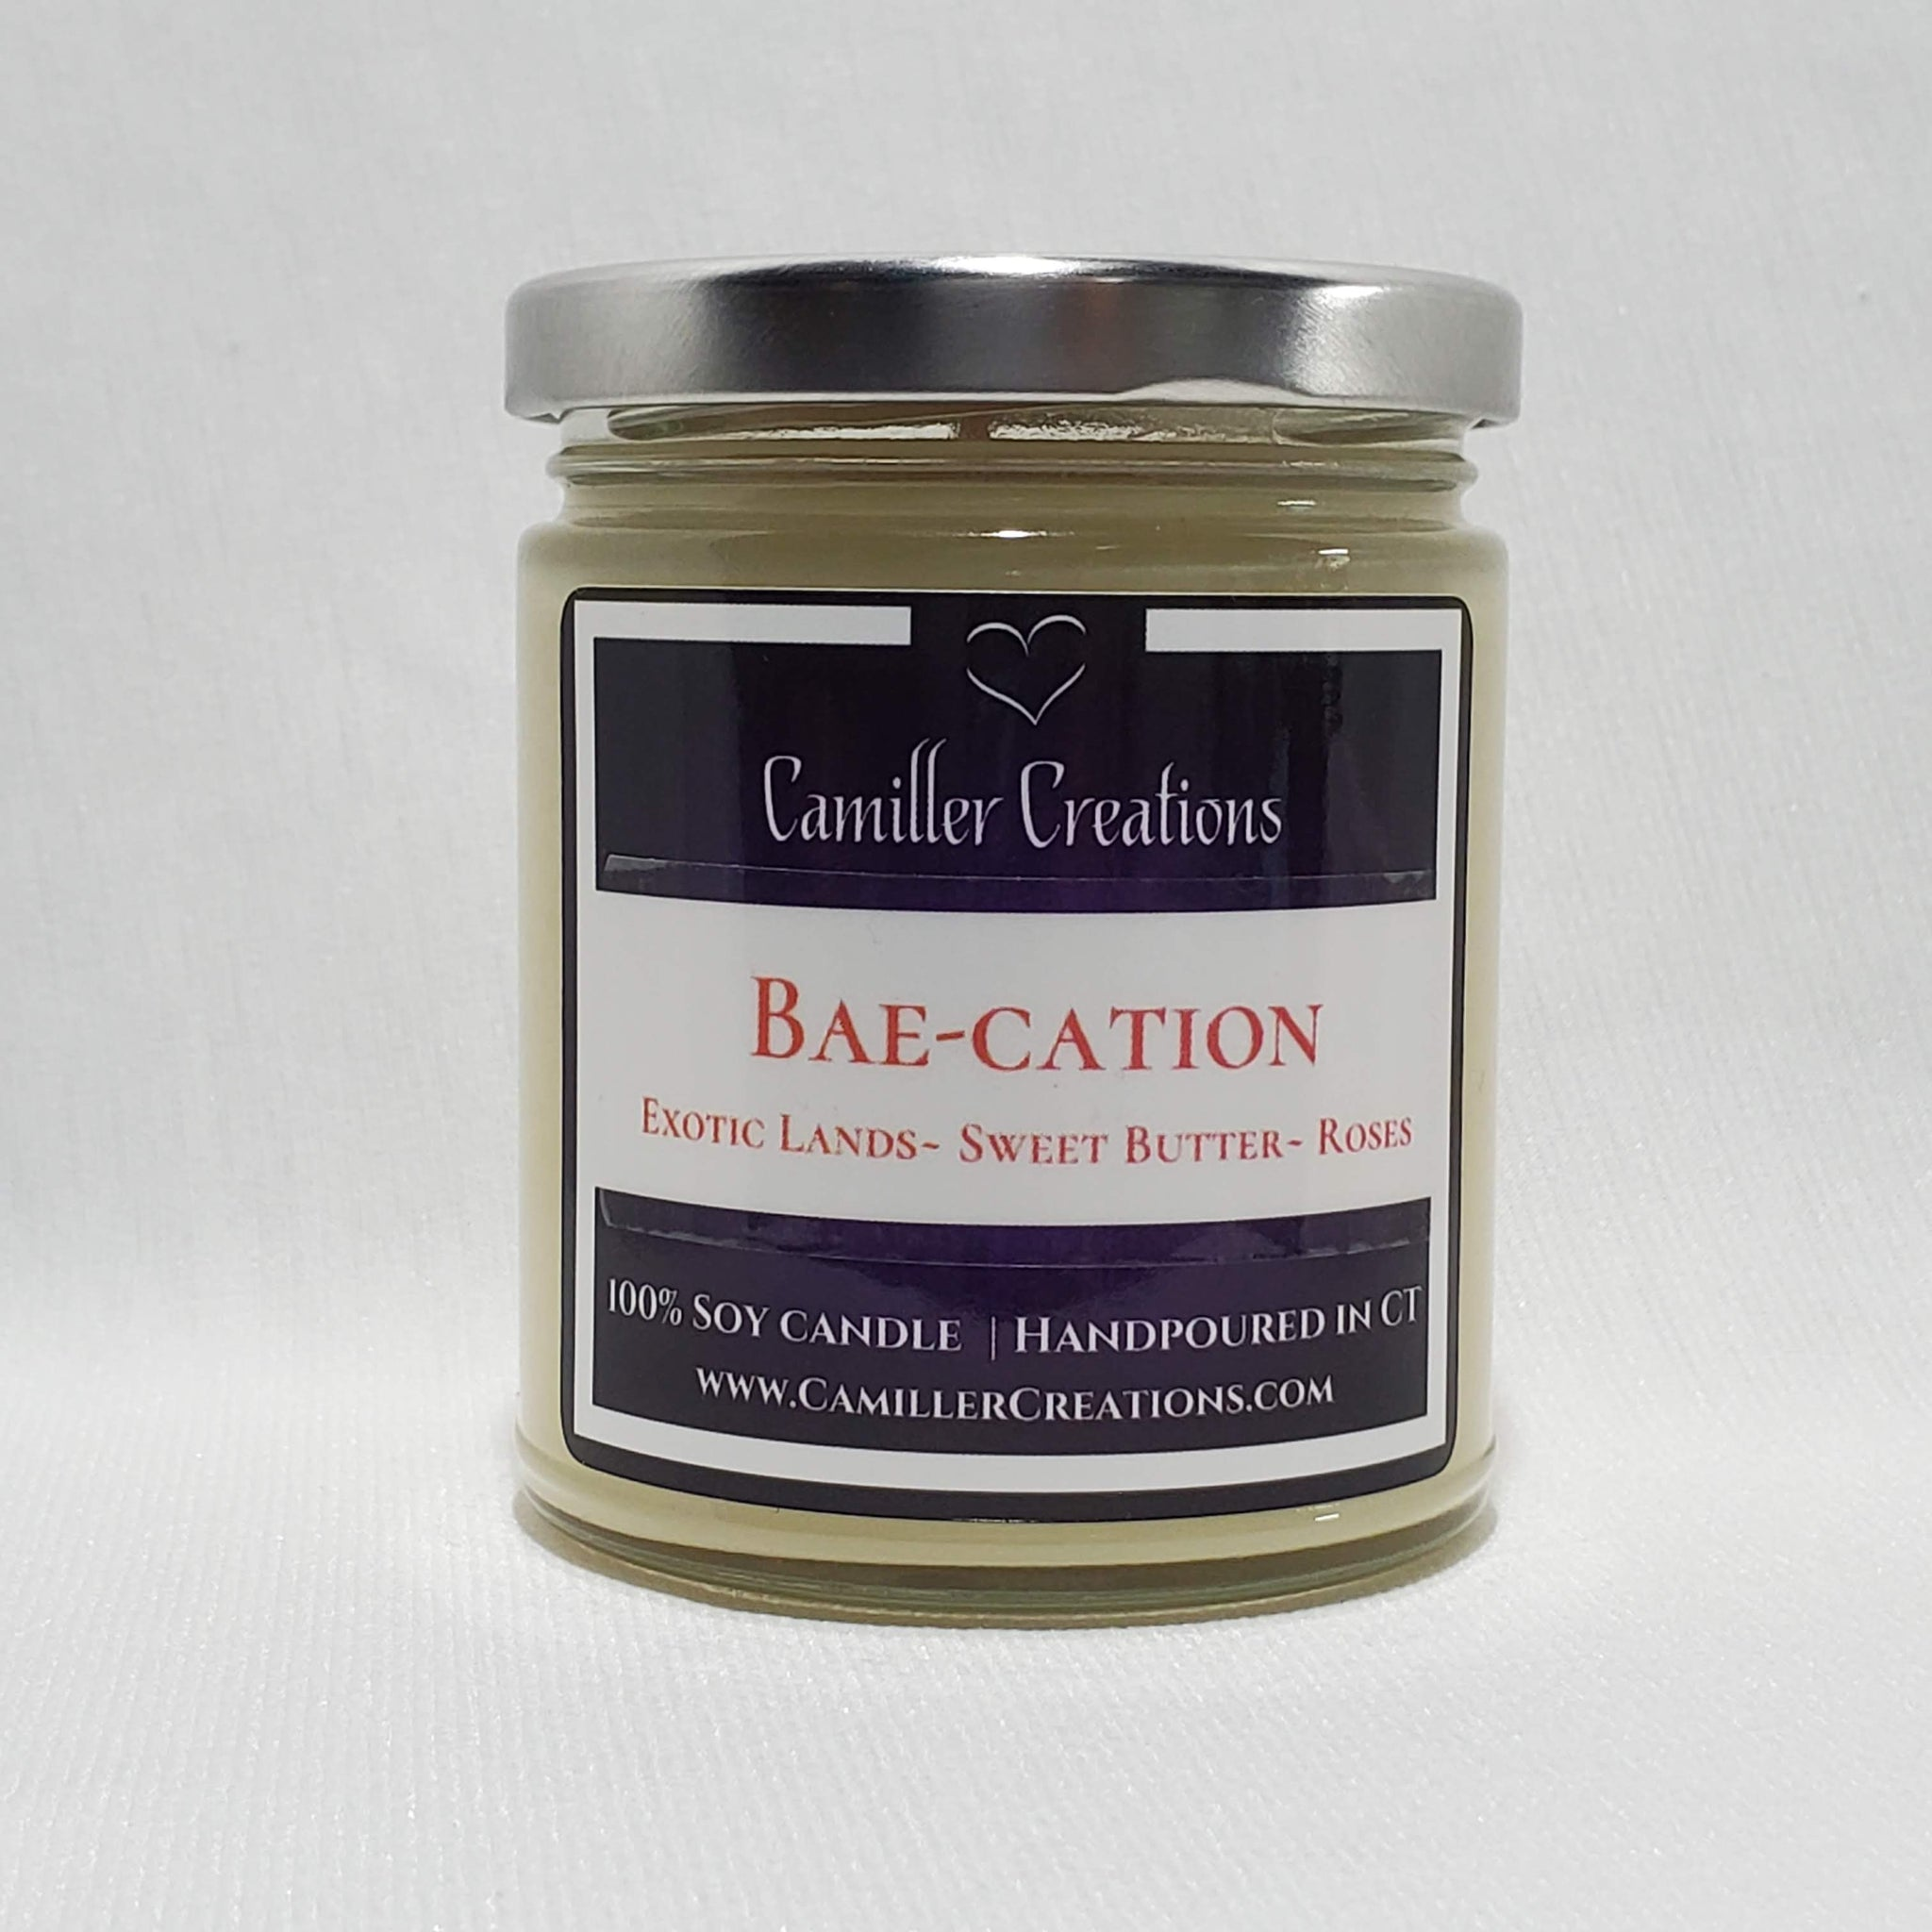 Bae-cation Candle